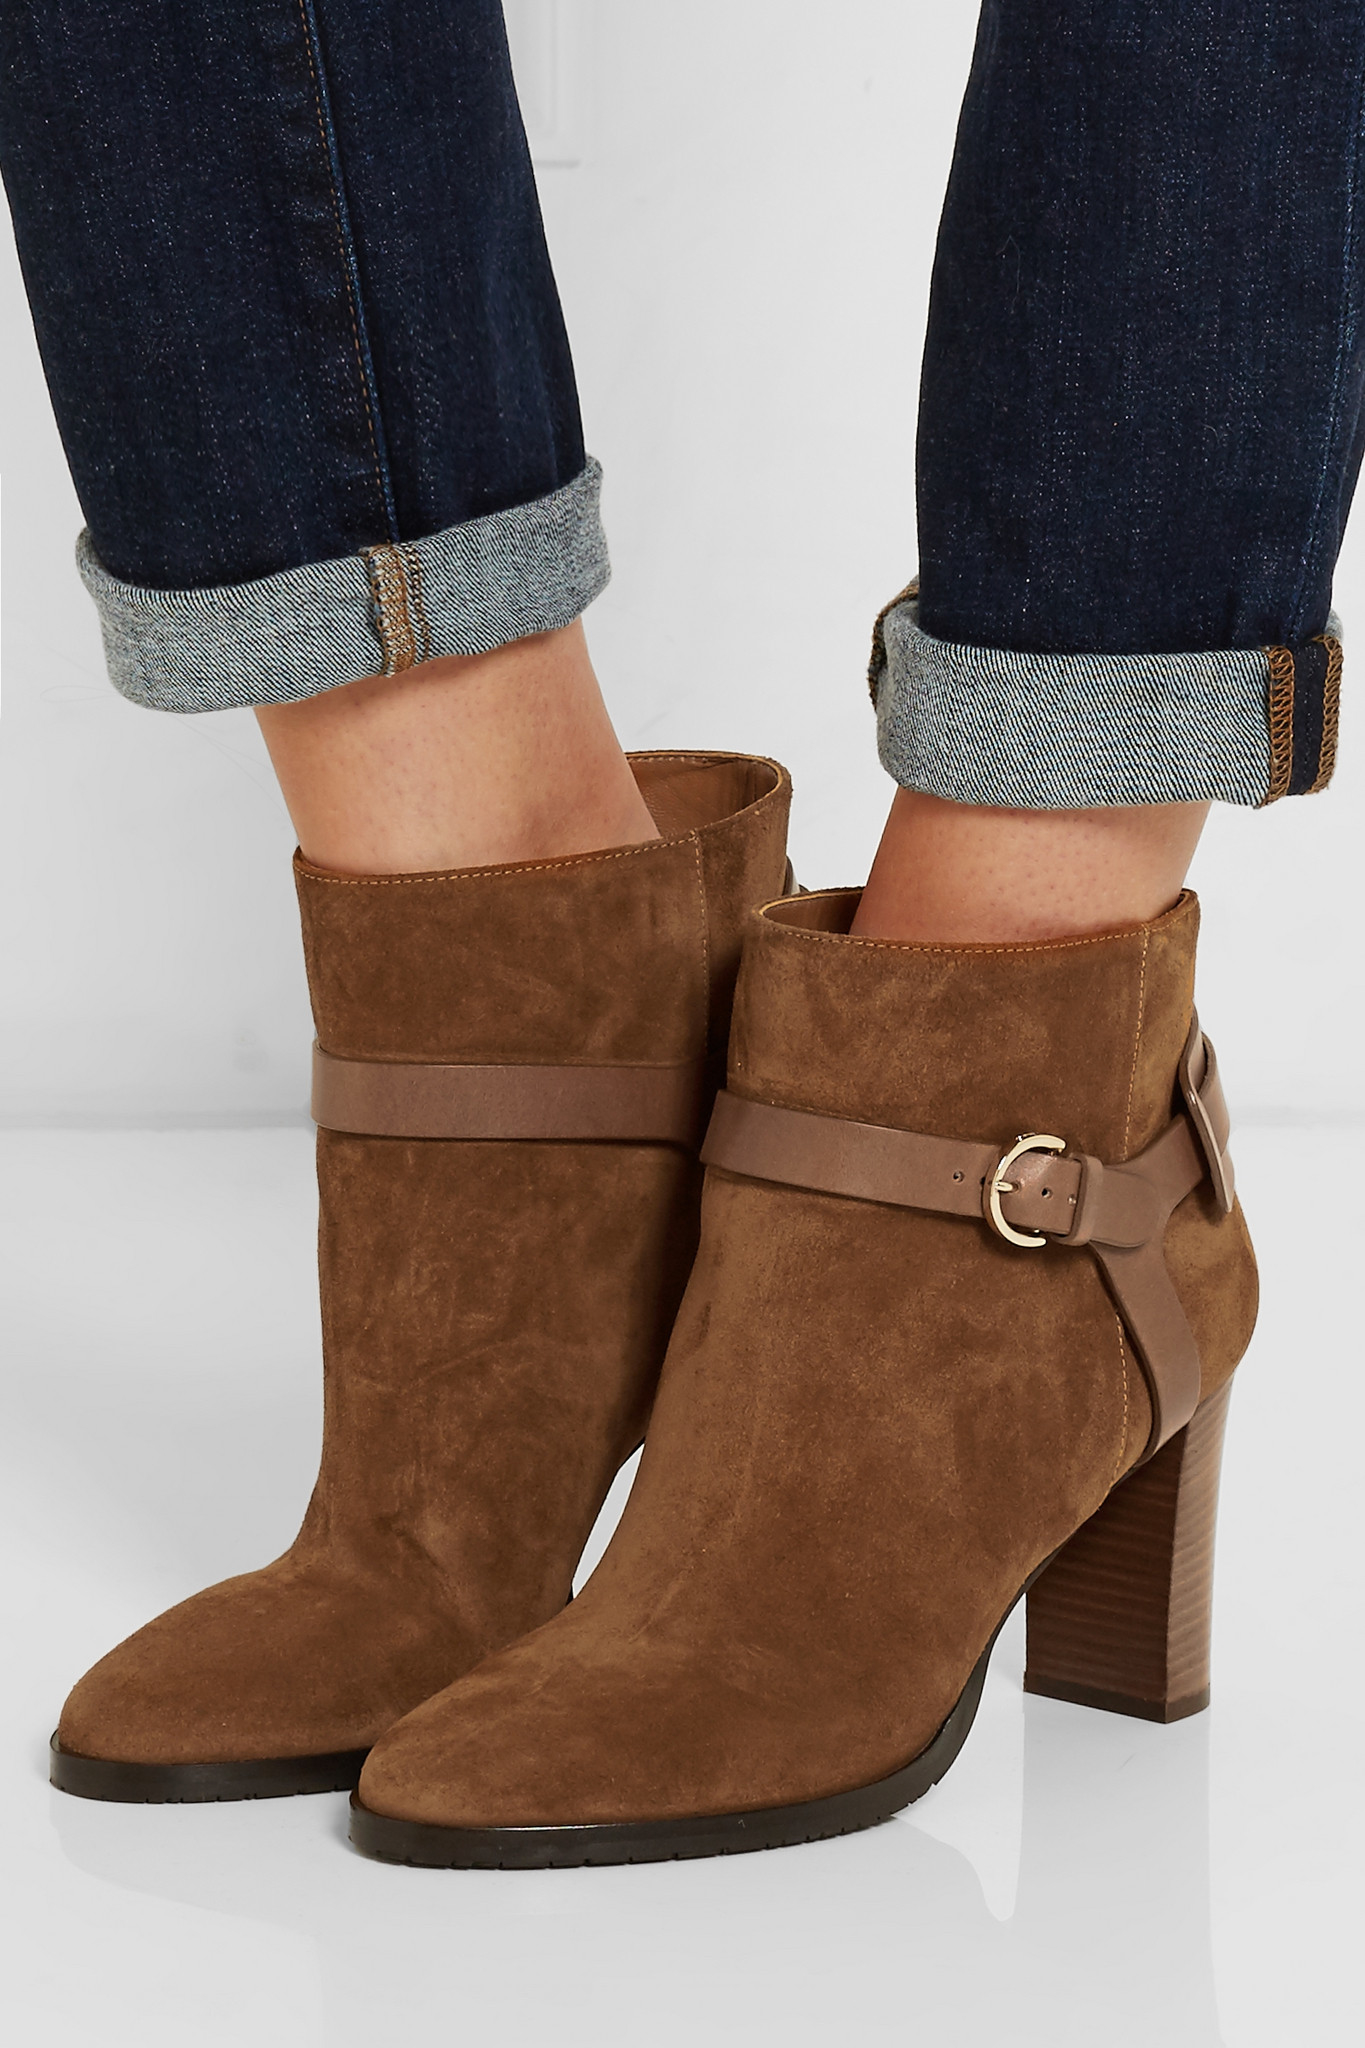 sale geniue stockist excellent for sale Jimmy Choo Suede Round-toe Ankle Boots outlet pay with visa authentic sale online 4CtjNde0